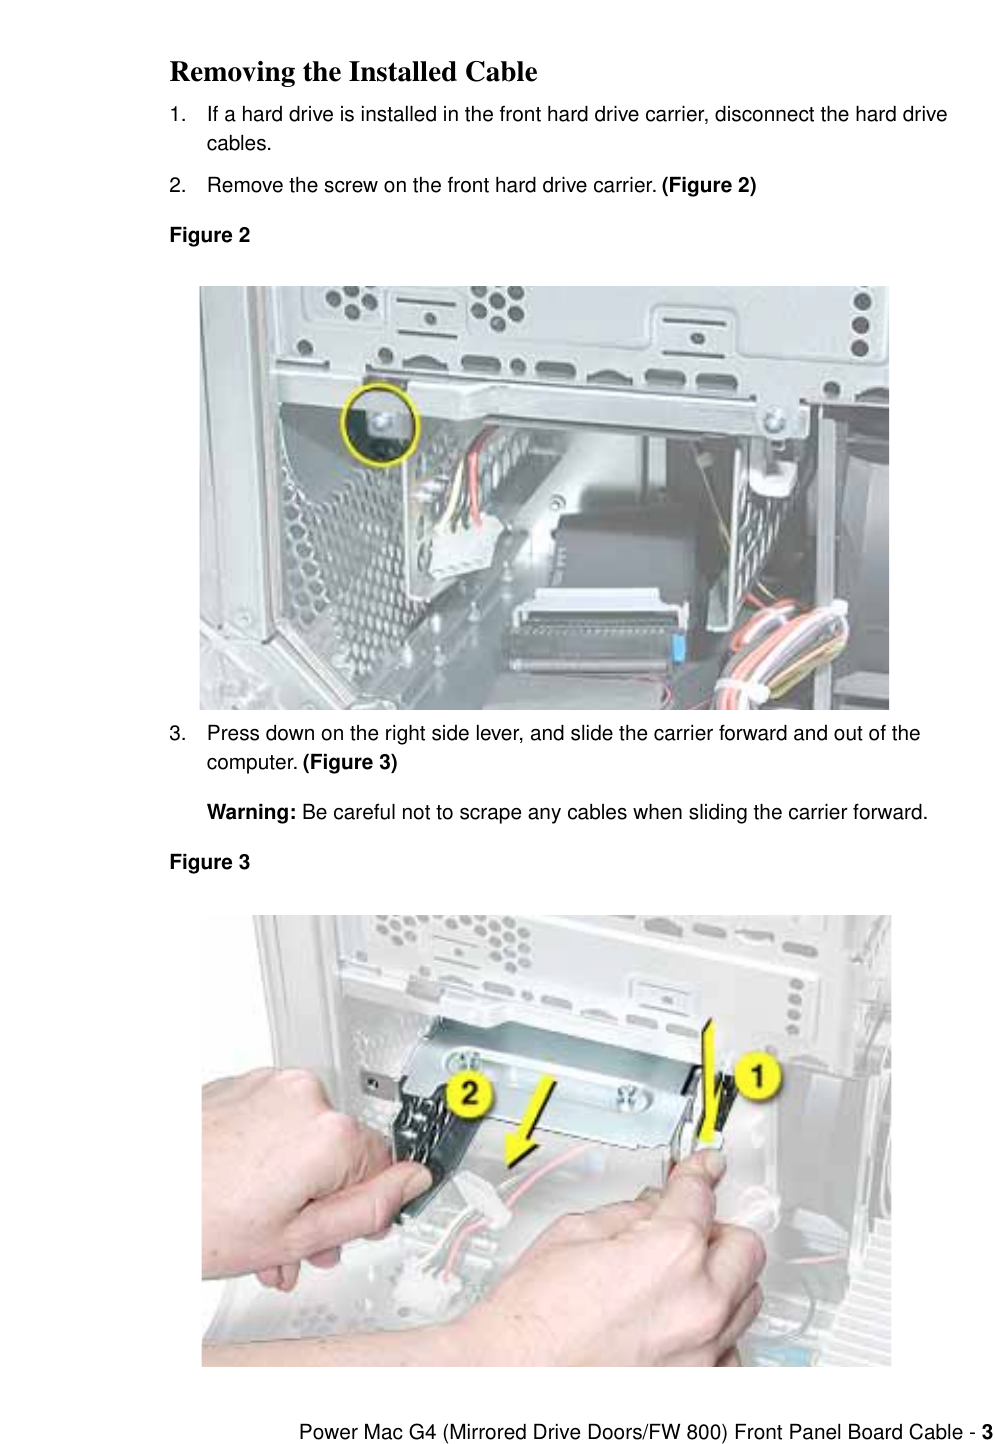 Power mac g4 cube manual wiring diagrams wiring diagram power mac g4 cube manual wiring diagrams wiring diagram asfbconference2016 Image collections